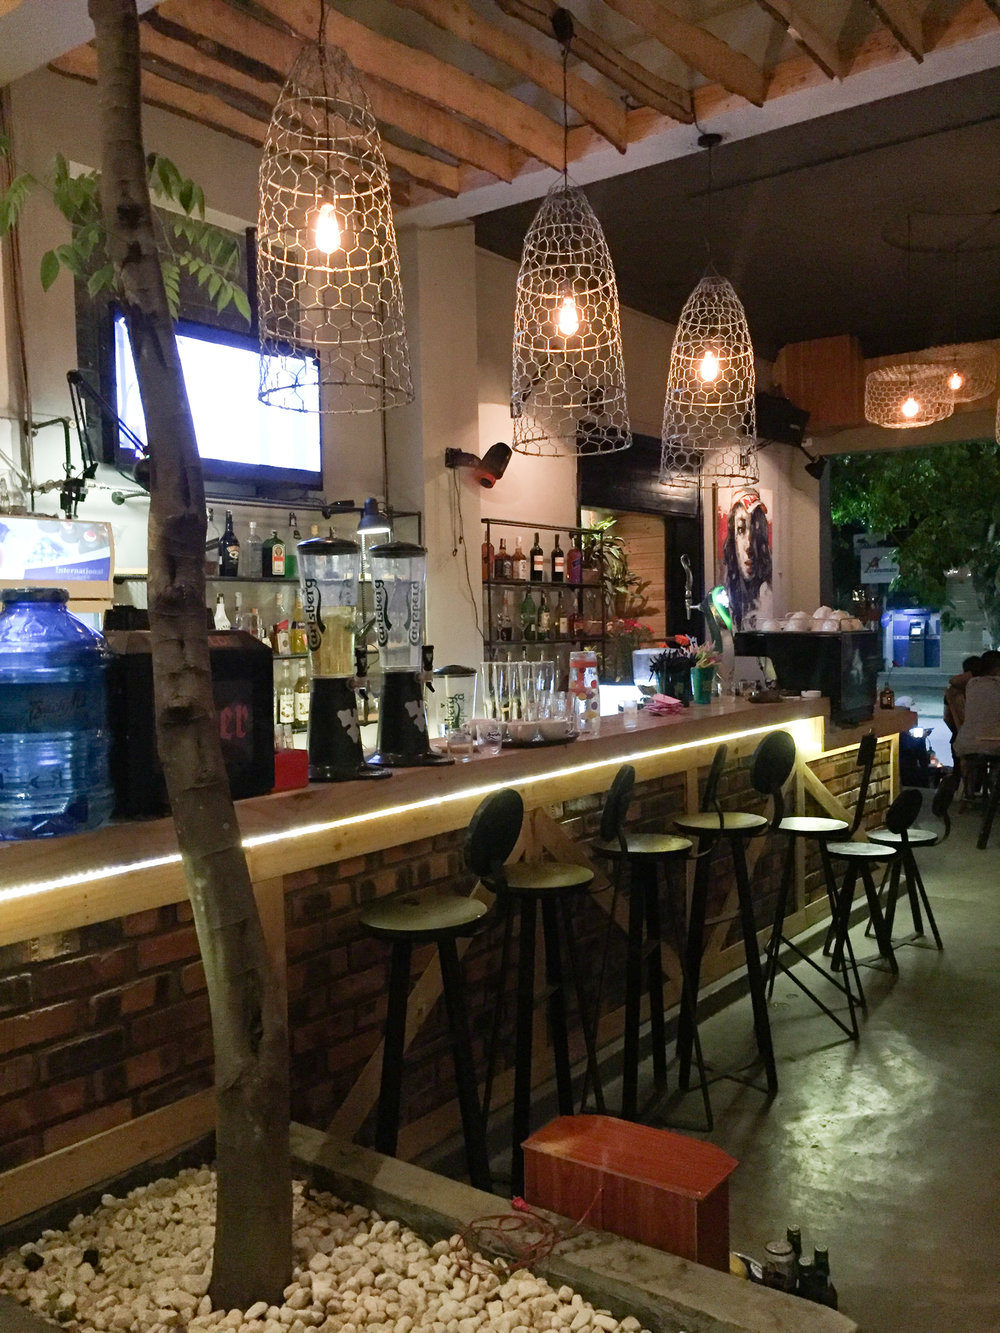 Trendy bars are aplenty in Hue